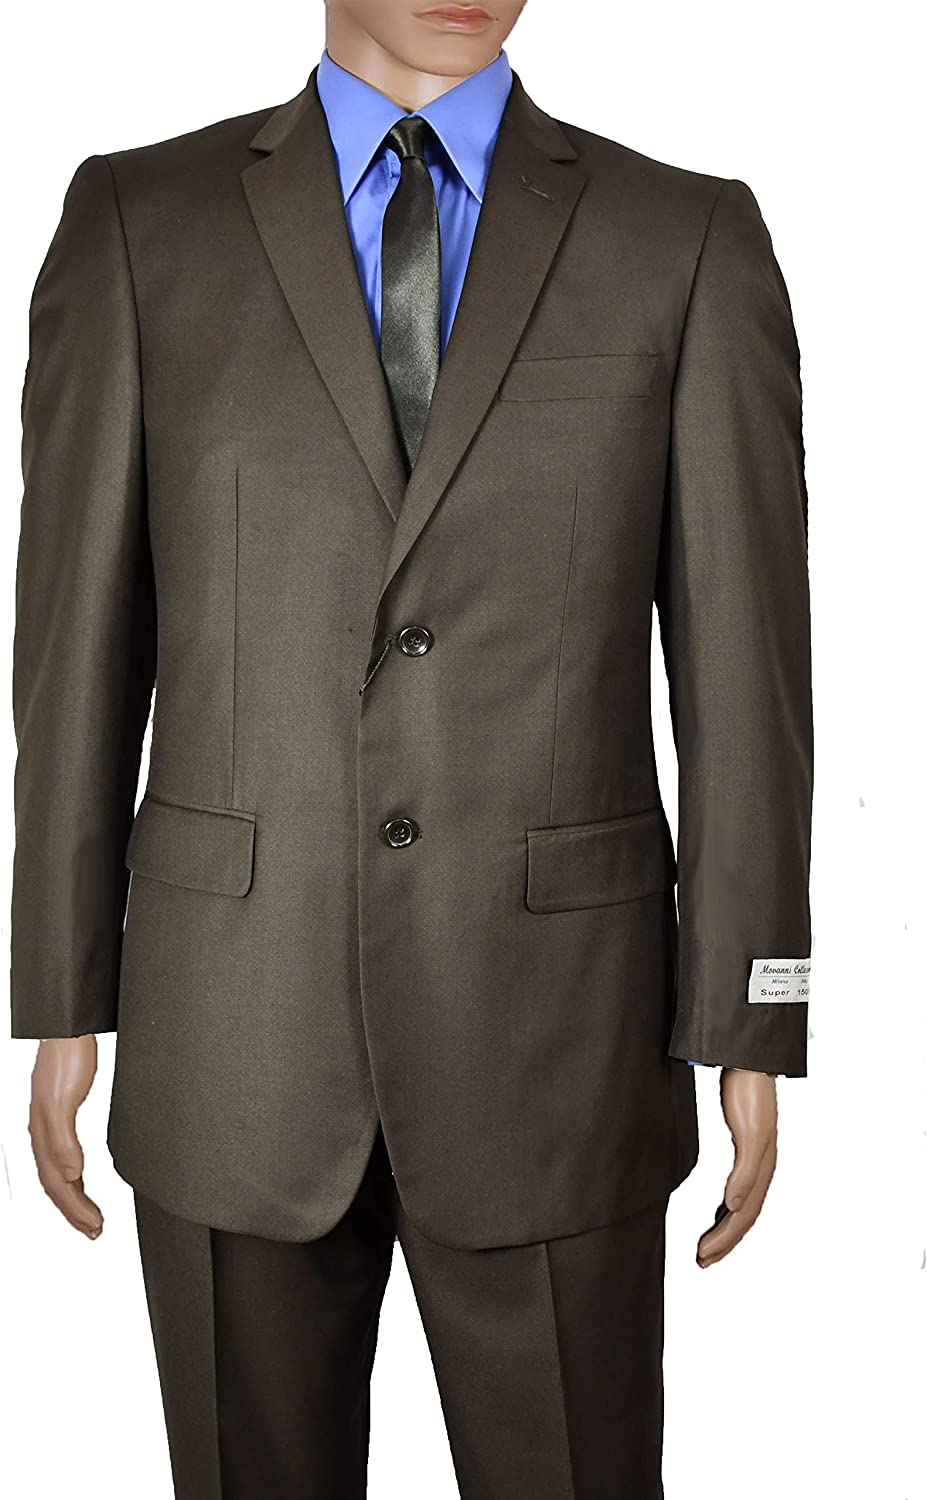 Men's Modern Fit Solid Brown Two Button Suit